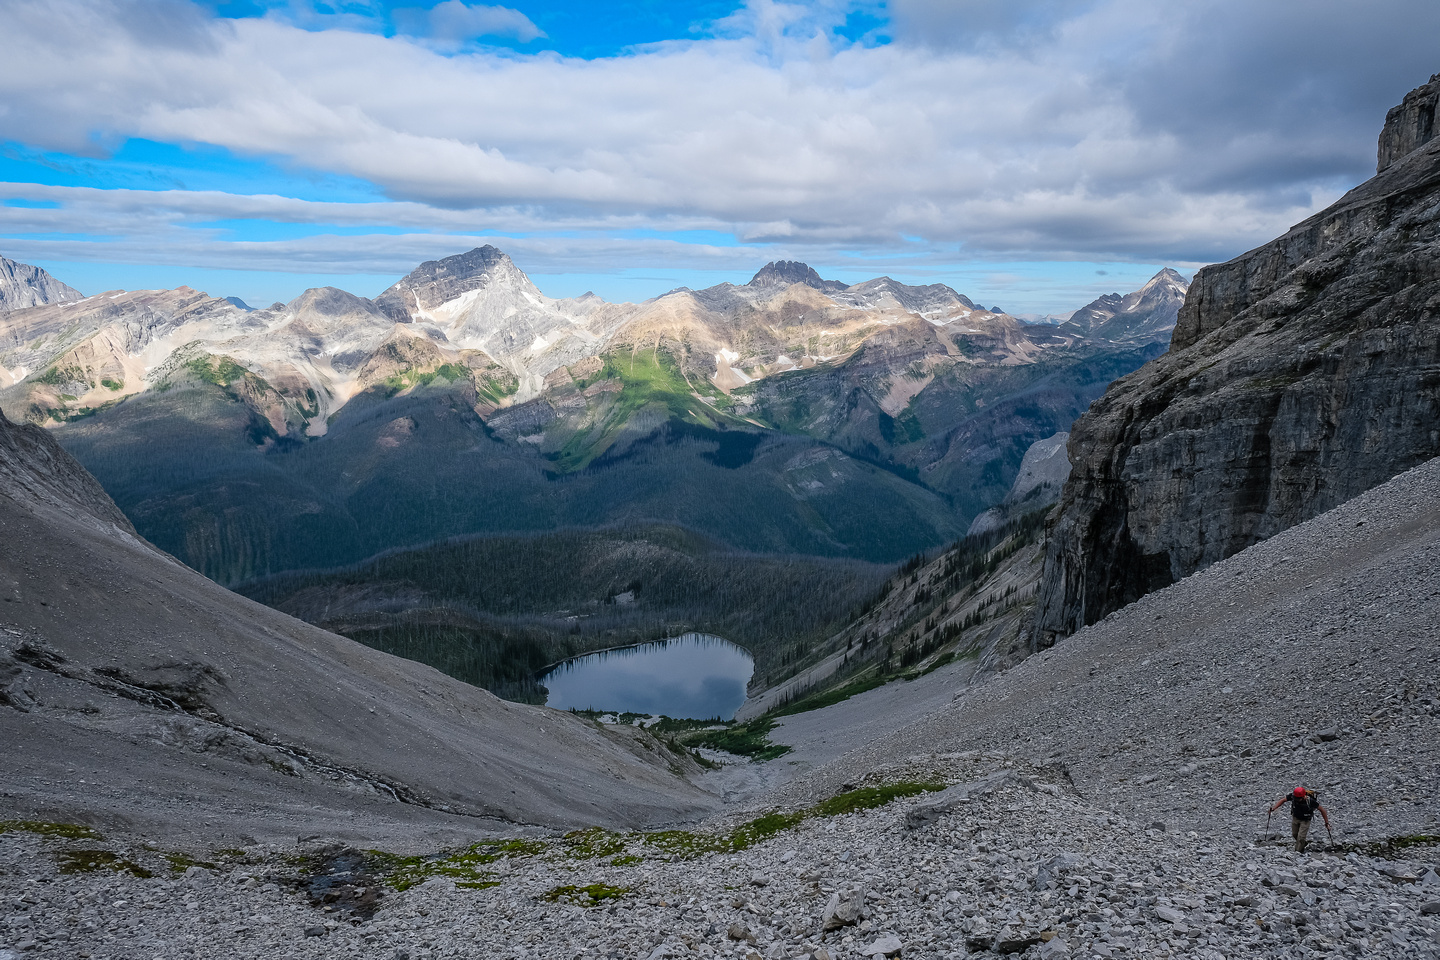 Views back over Deep Lake to Russell Peak.